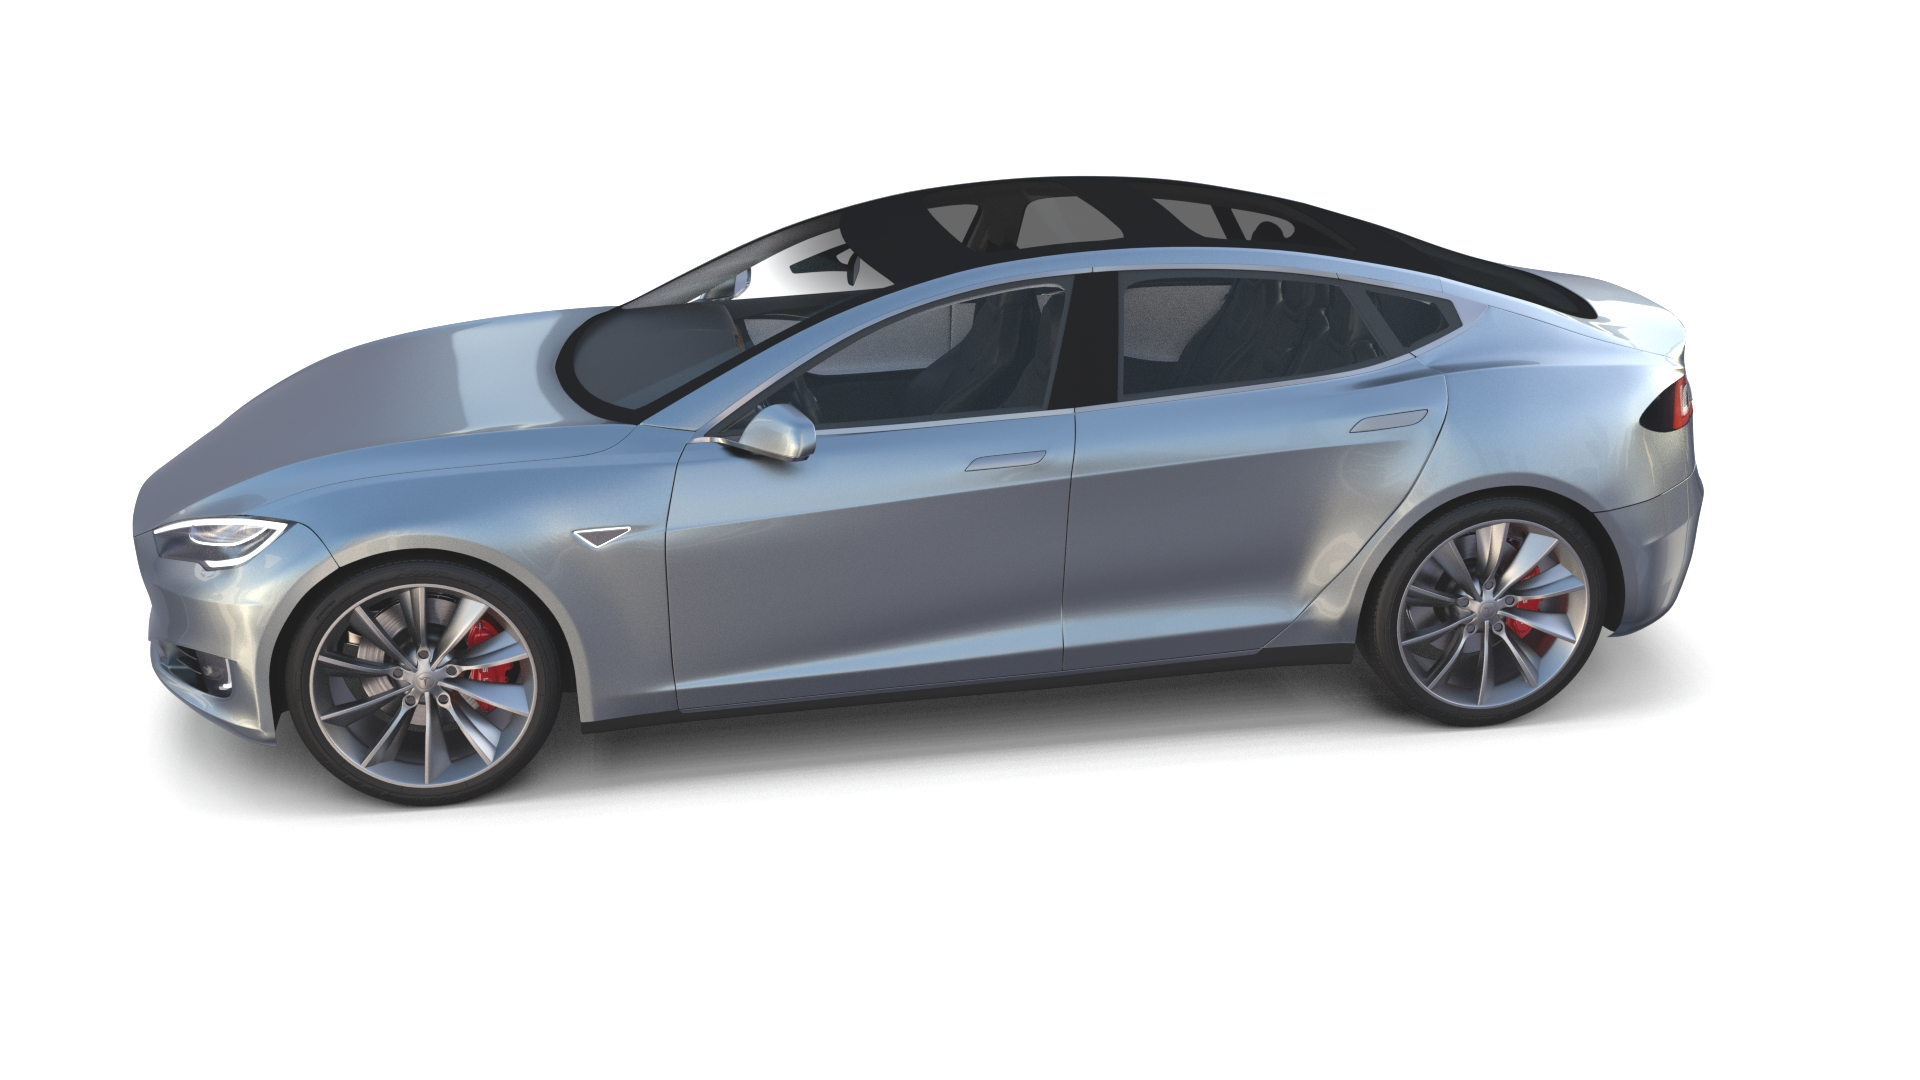 Tesla model s 2016 silver with interior by dragosburian for Interieur tesla